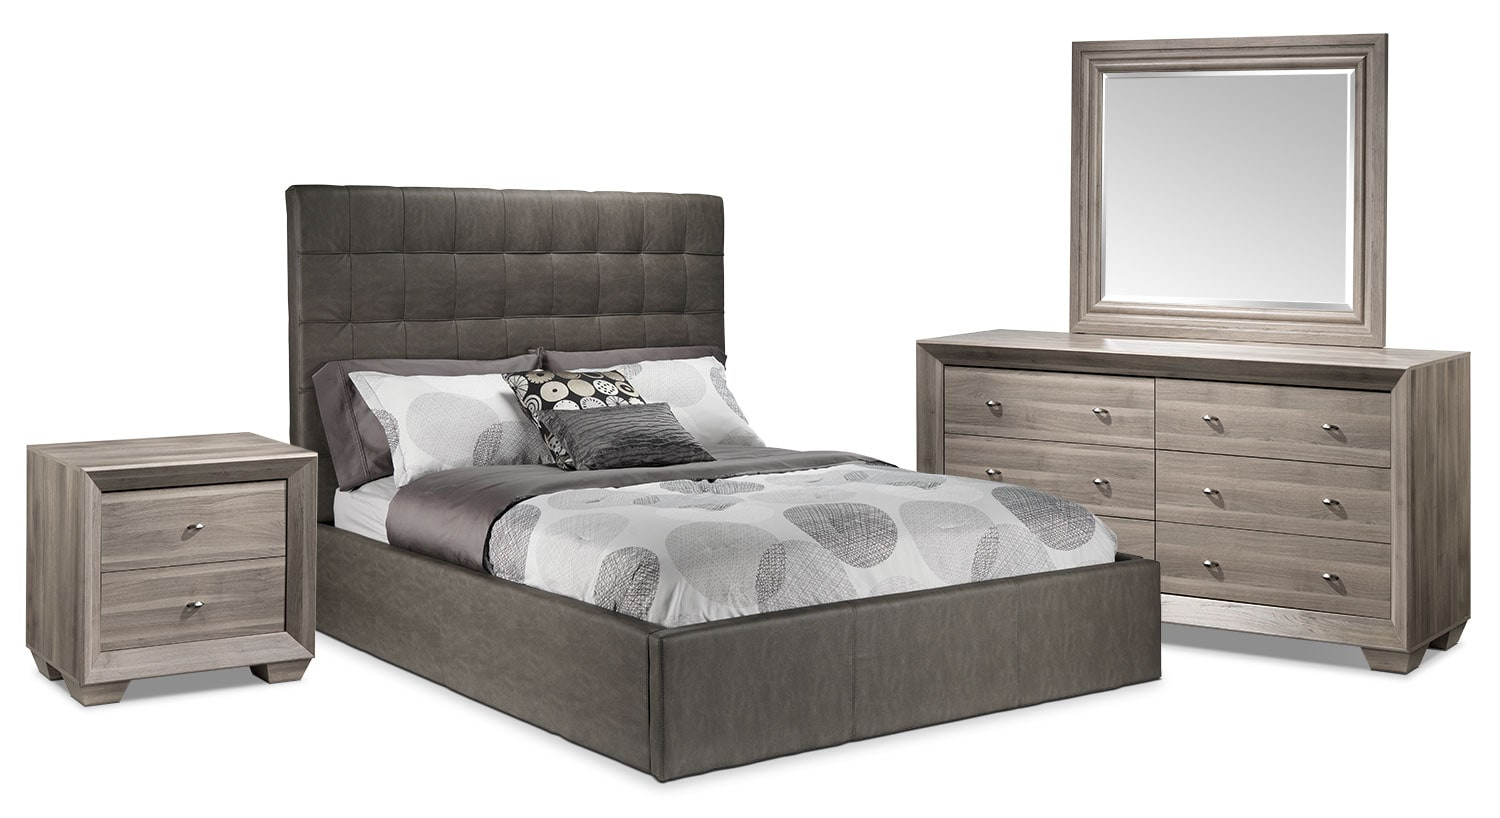 Franklin 5-Piece King Bedroom Set - Taupe